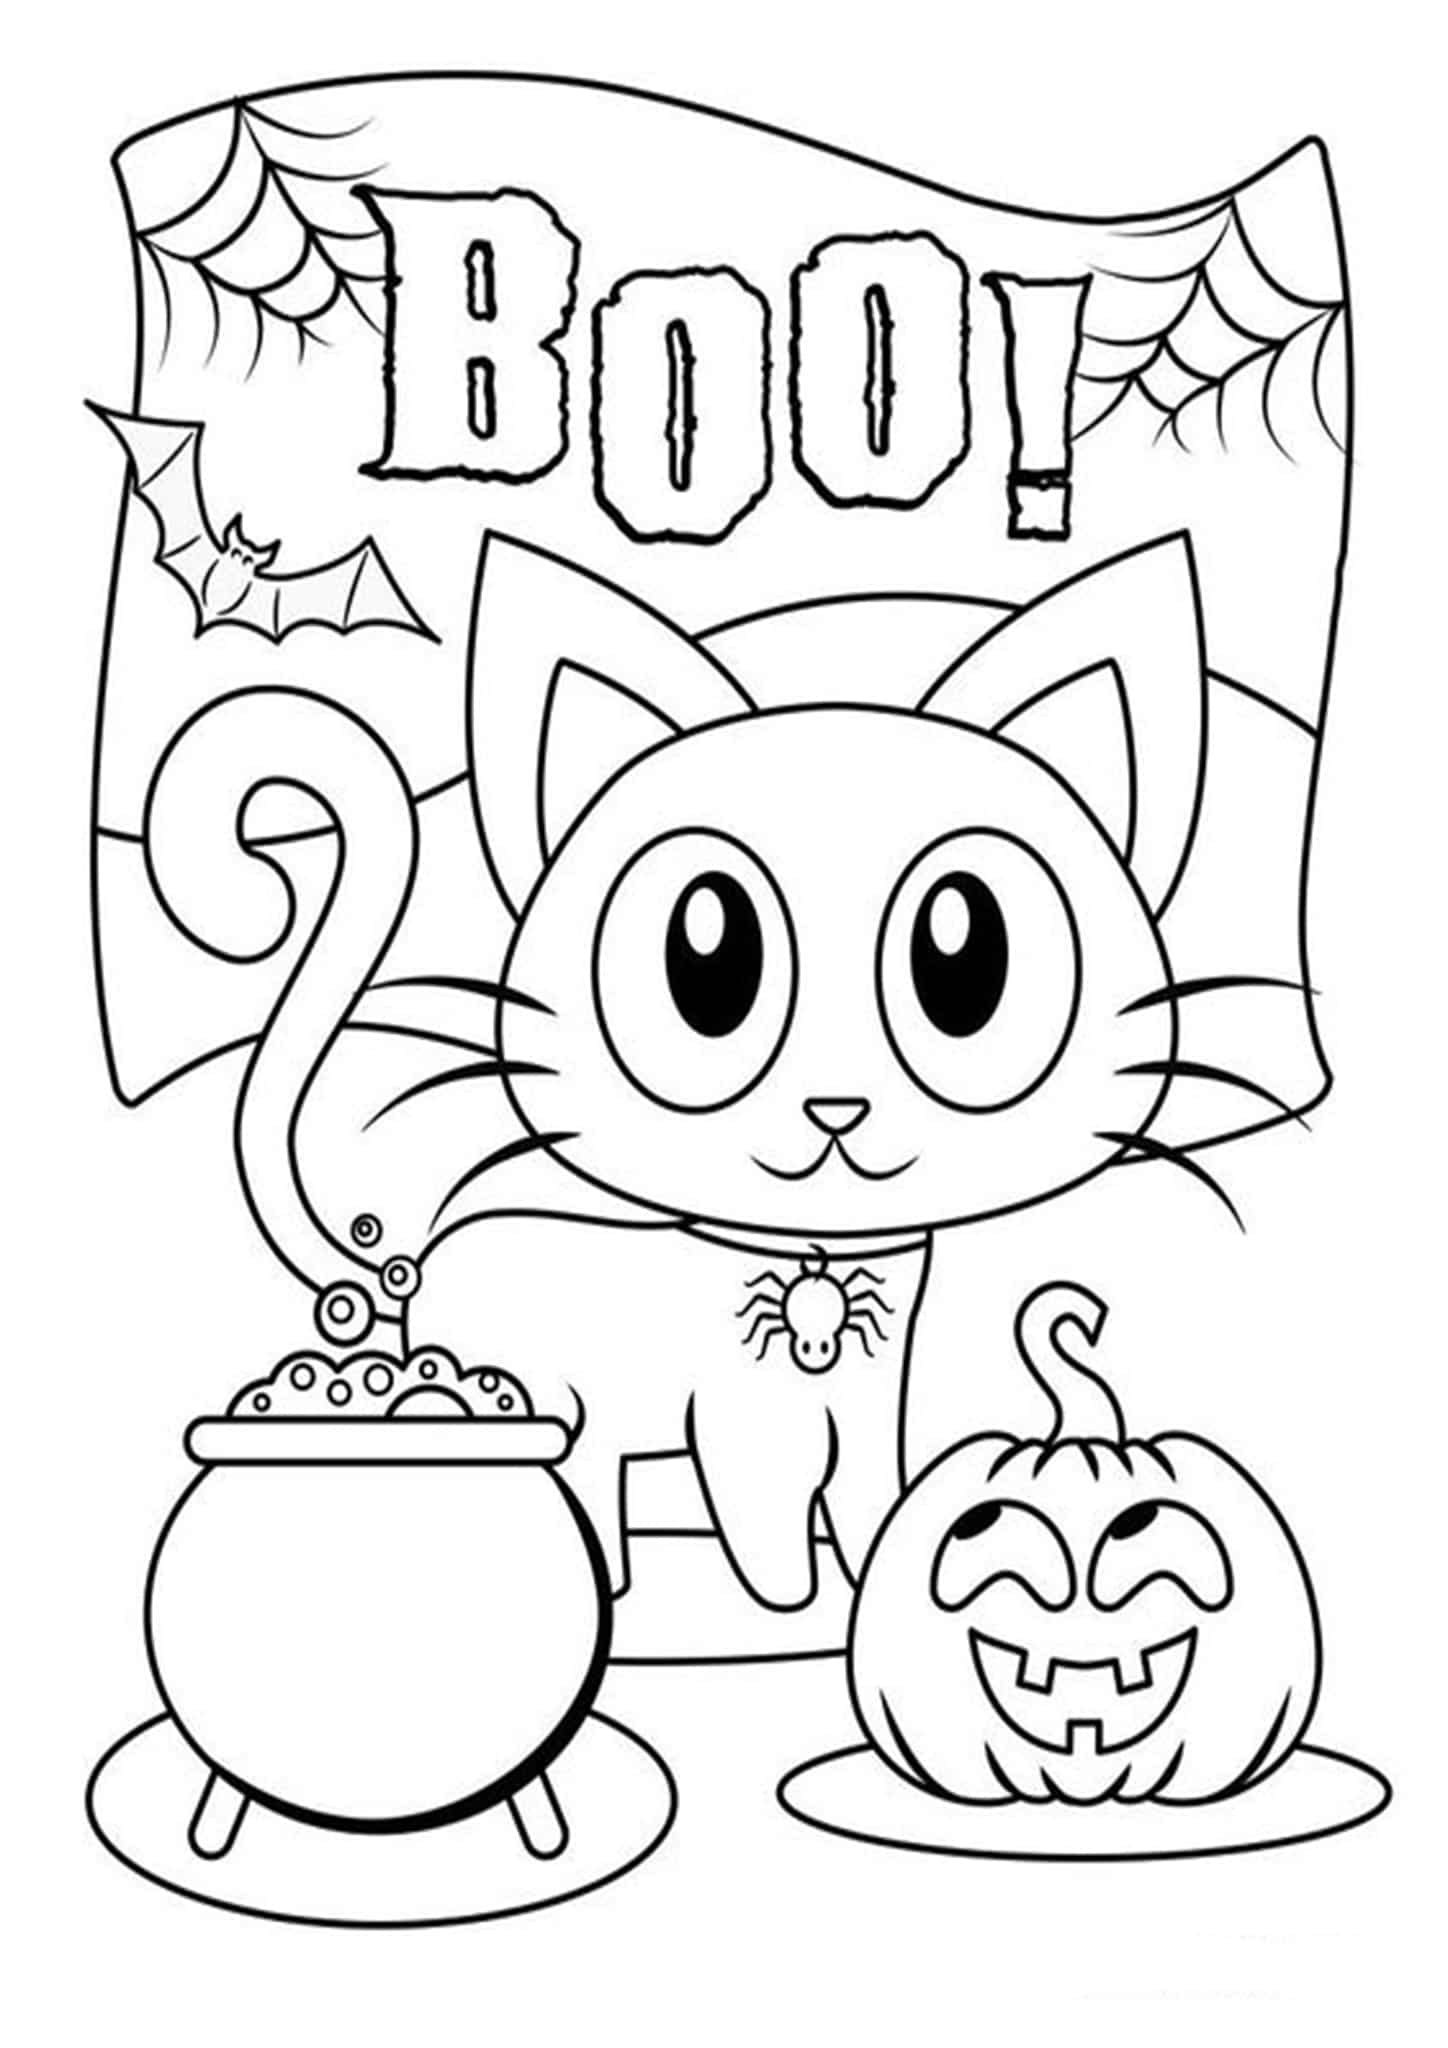 cute coloring sheets free easy to print cute coloring pages tulamama coloring sheets cute